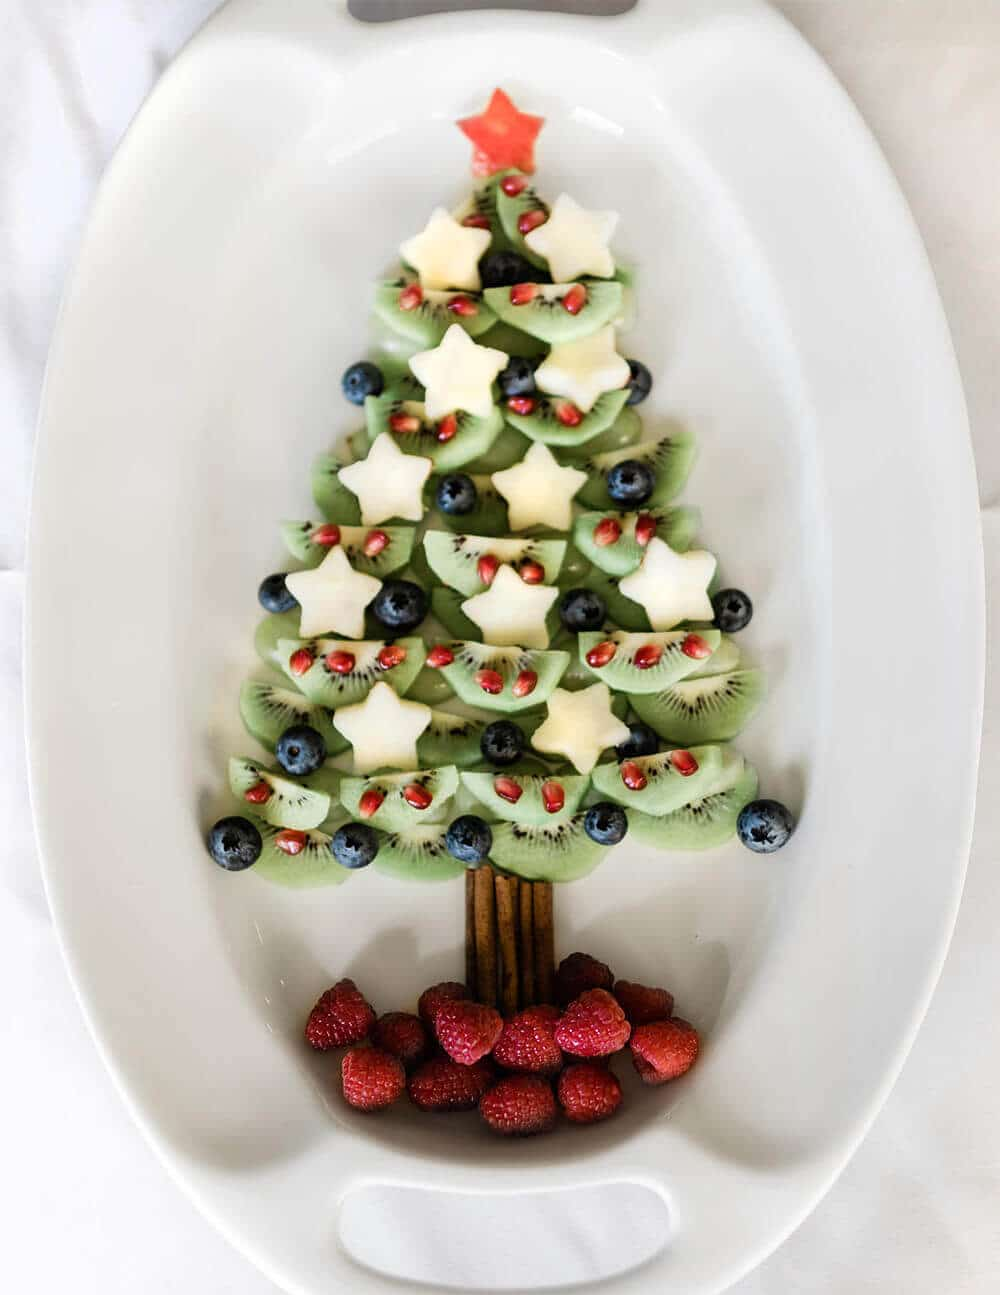 Finished fruit Christmas tree on white party platter